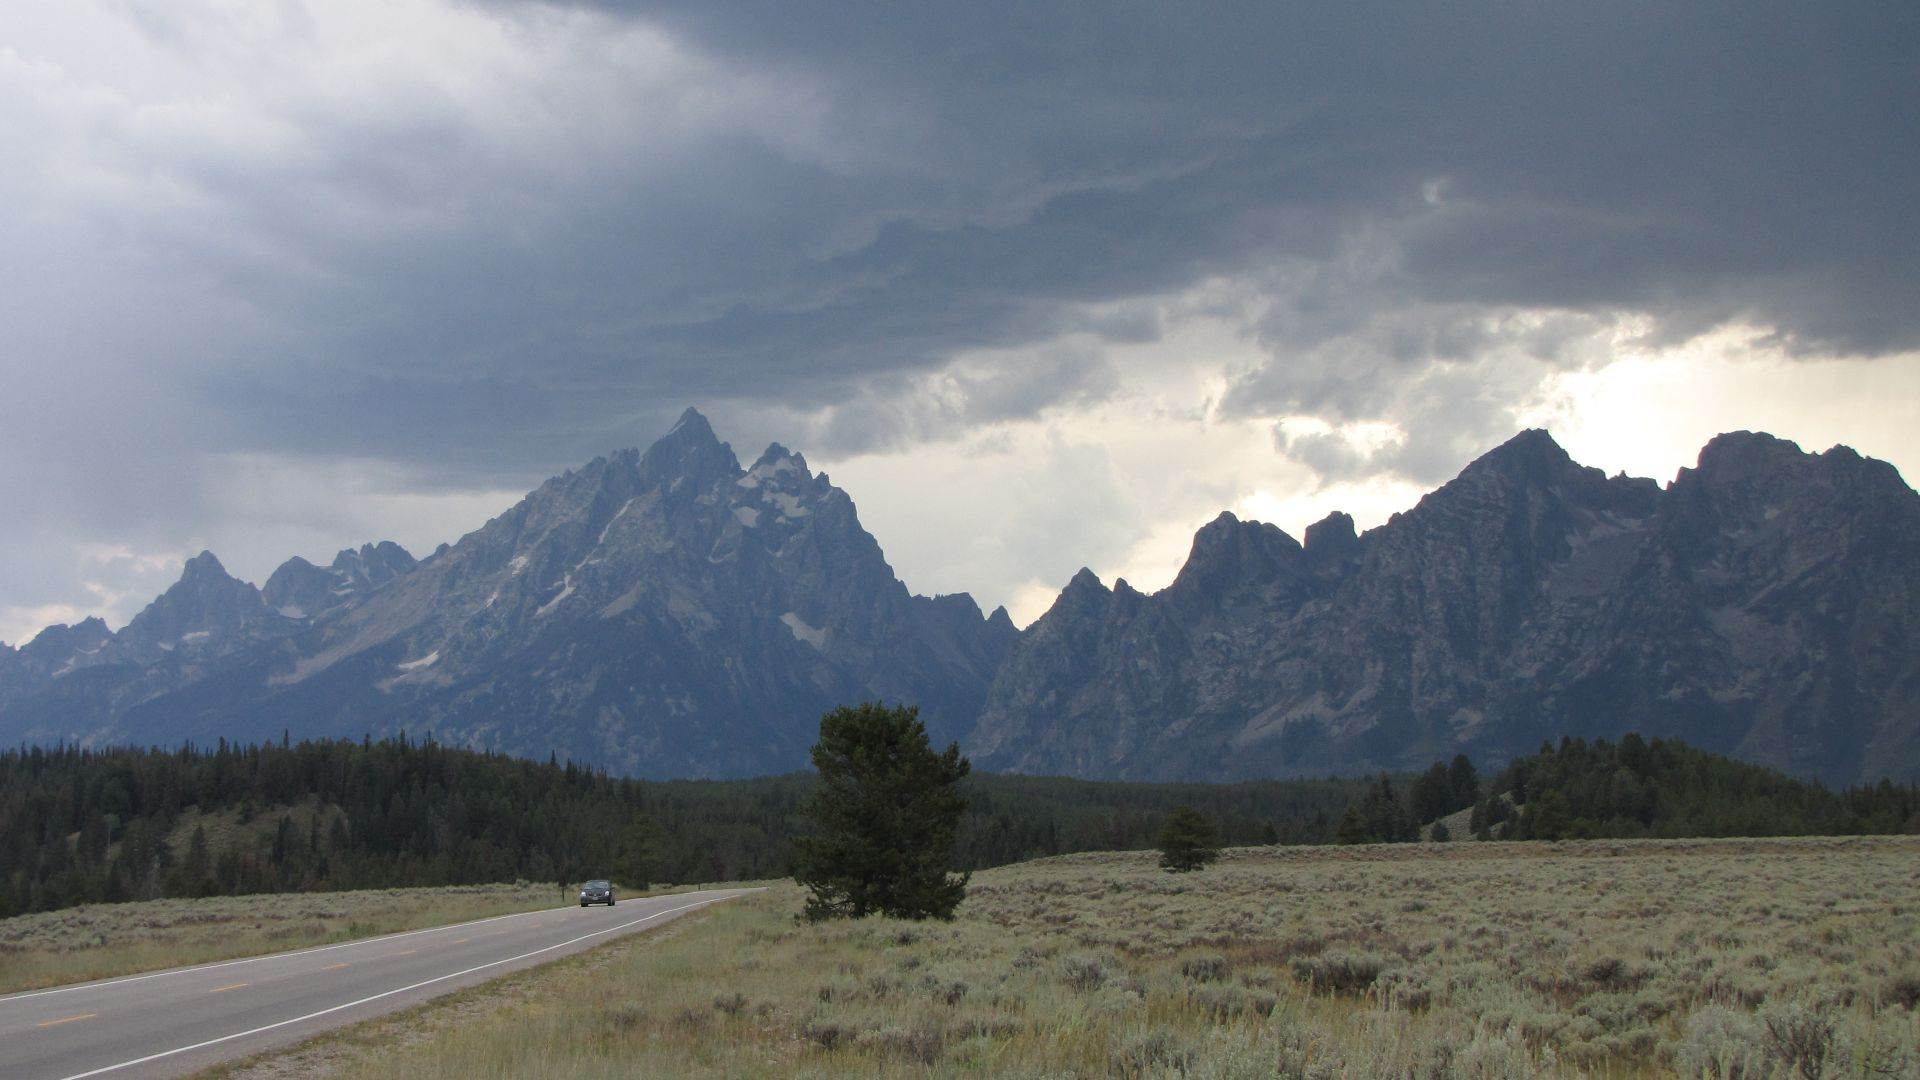 Grand Teton Nat Pk, WY, USA - Biblically proportioned storm approaches...now starts the race to get to the campsite (15 miles) & pitch the tent before the impending maelstrom